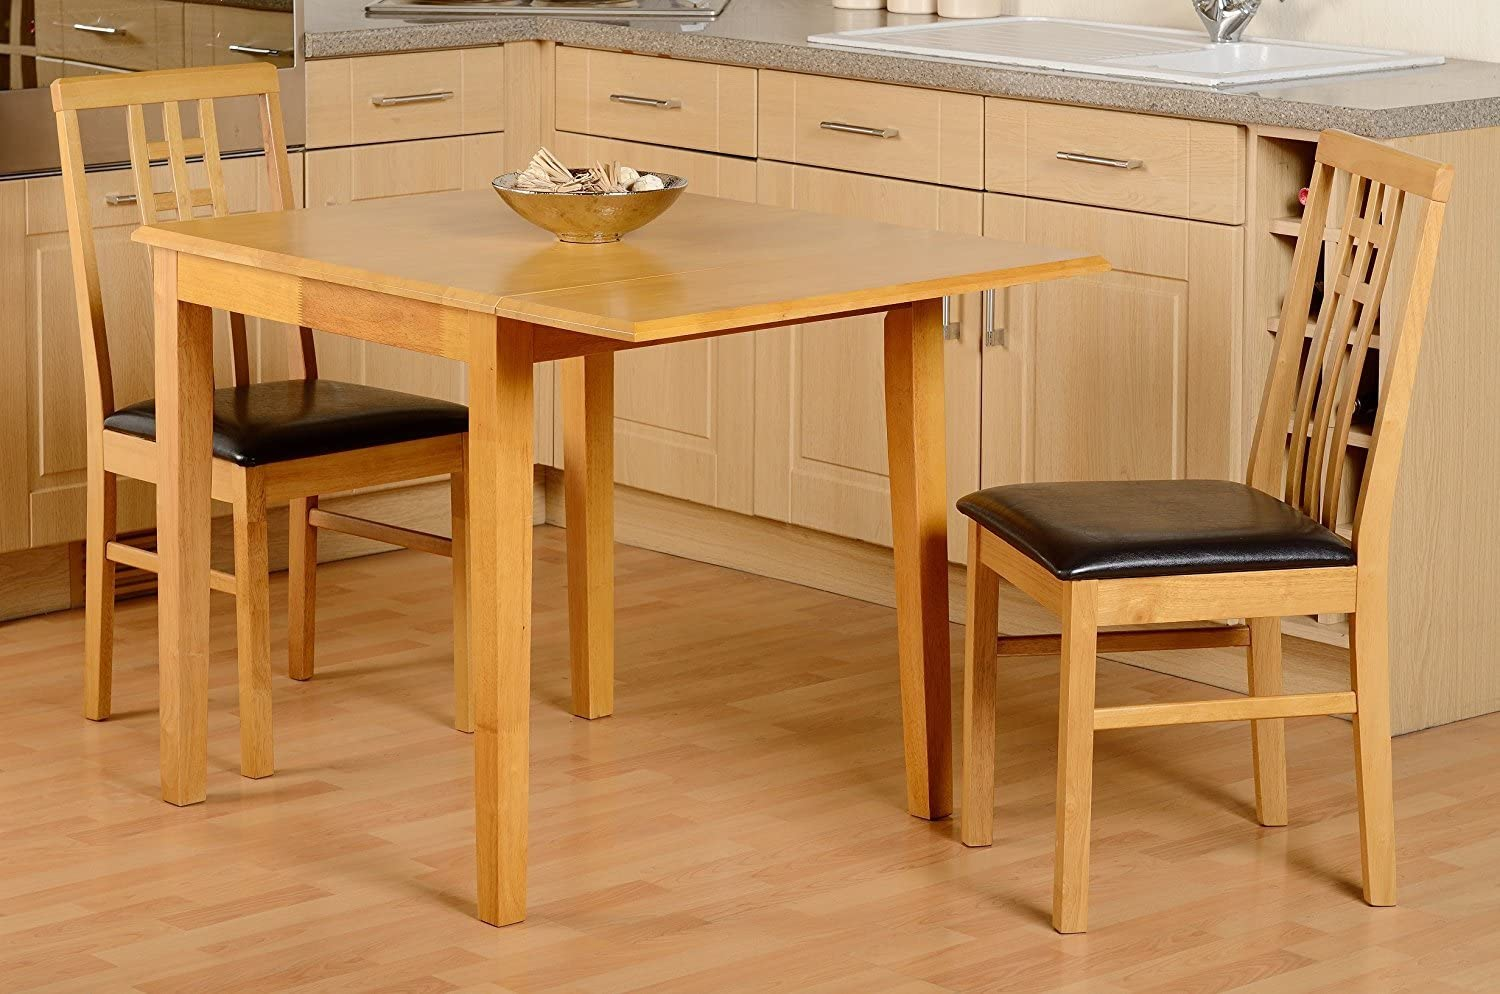 Seconique Vienna 2 Seater Dropleaf Dining Set